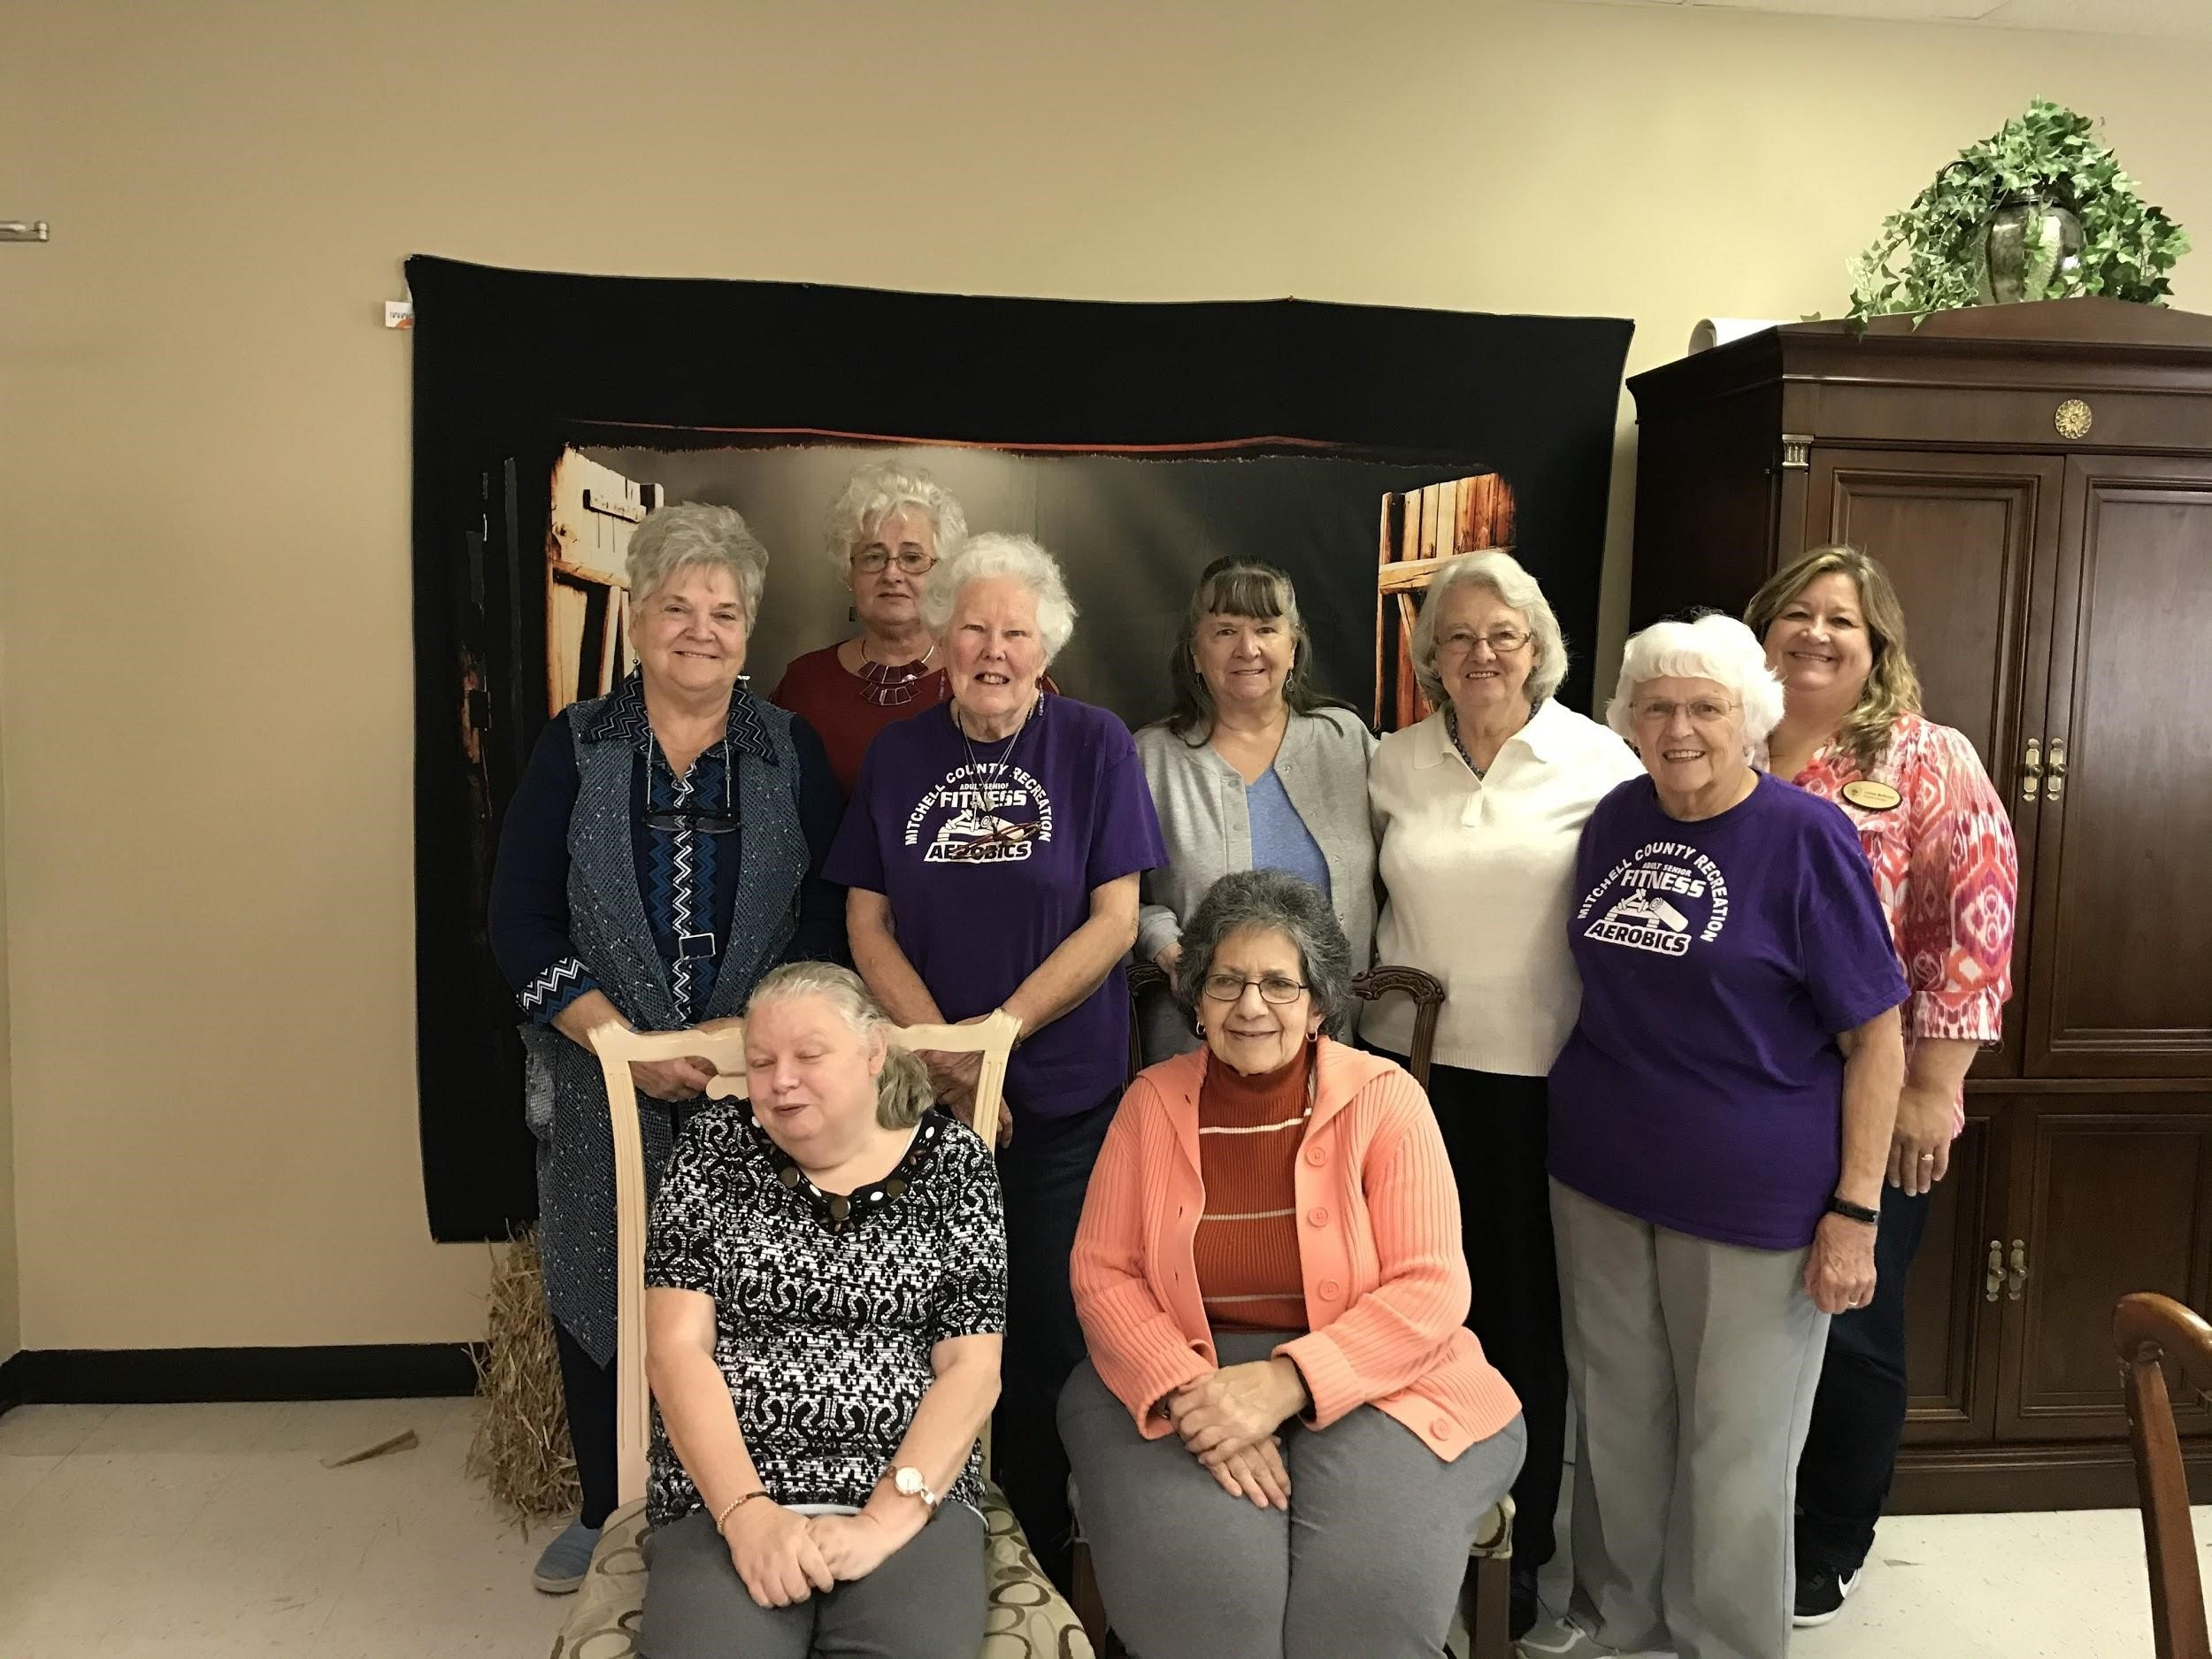 group of woman at the senior center posing for picture